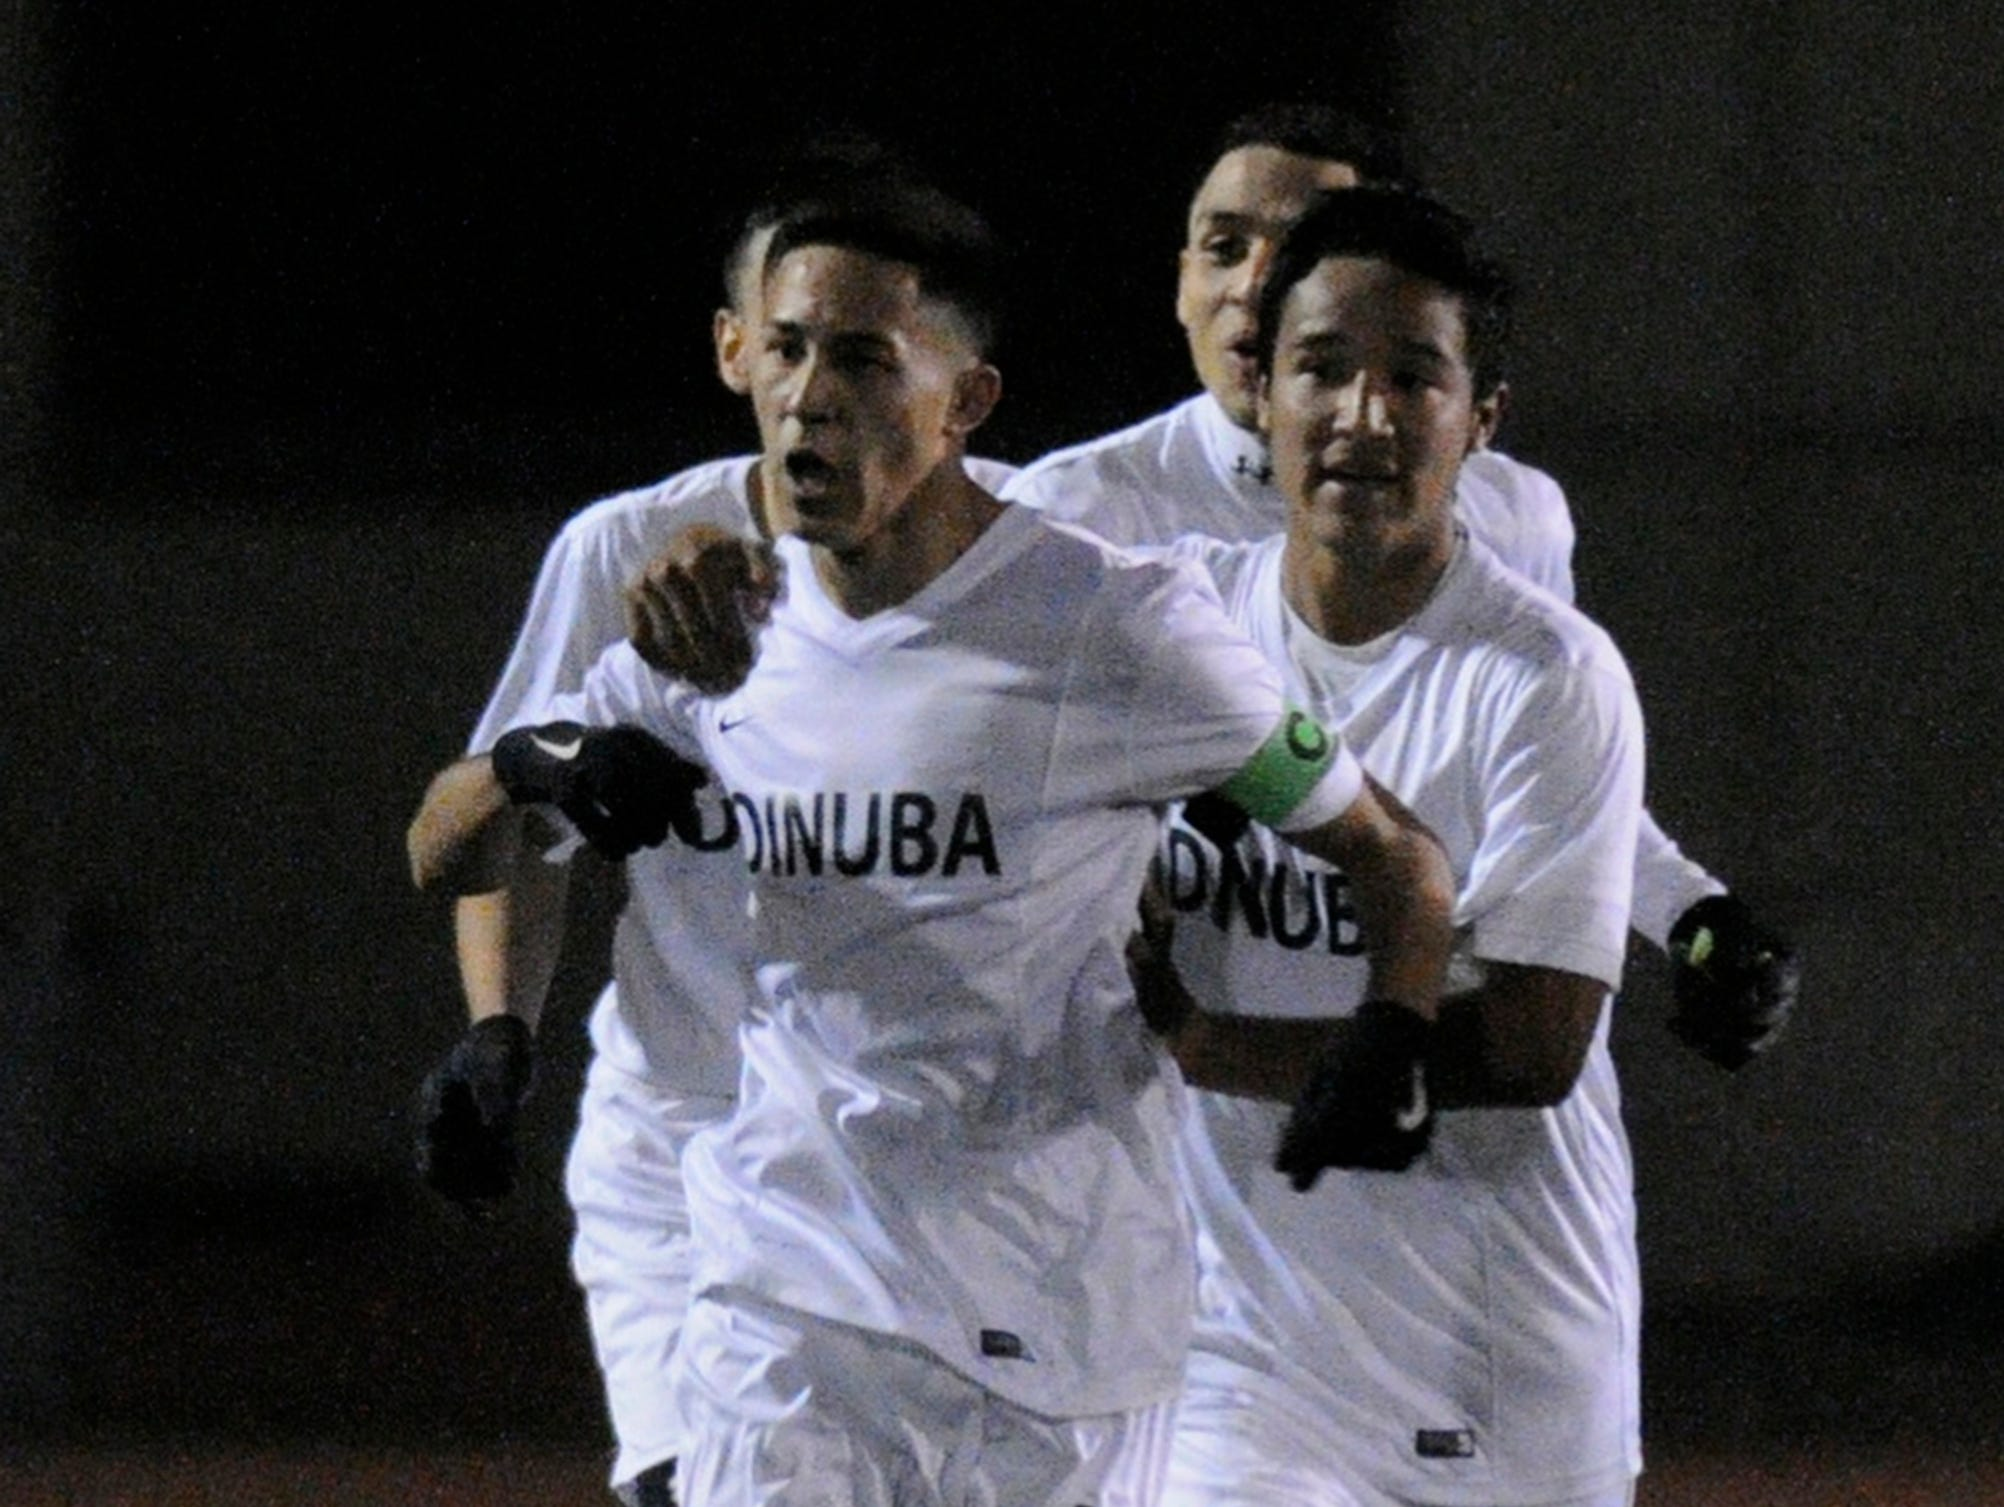 Dinuba's Chris Amaro celebrates with teammates after scoring a goal in the Central Section Division III championship.